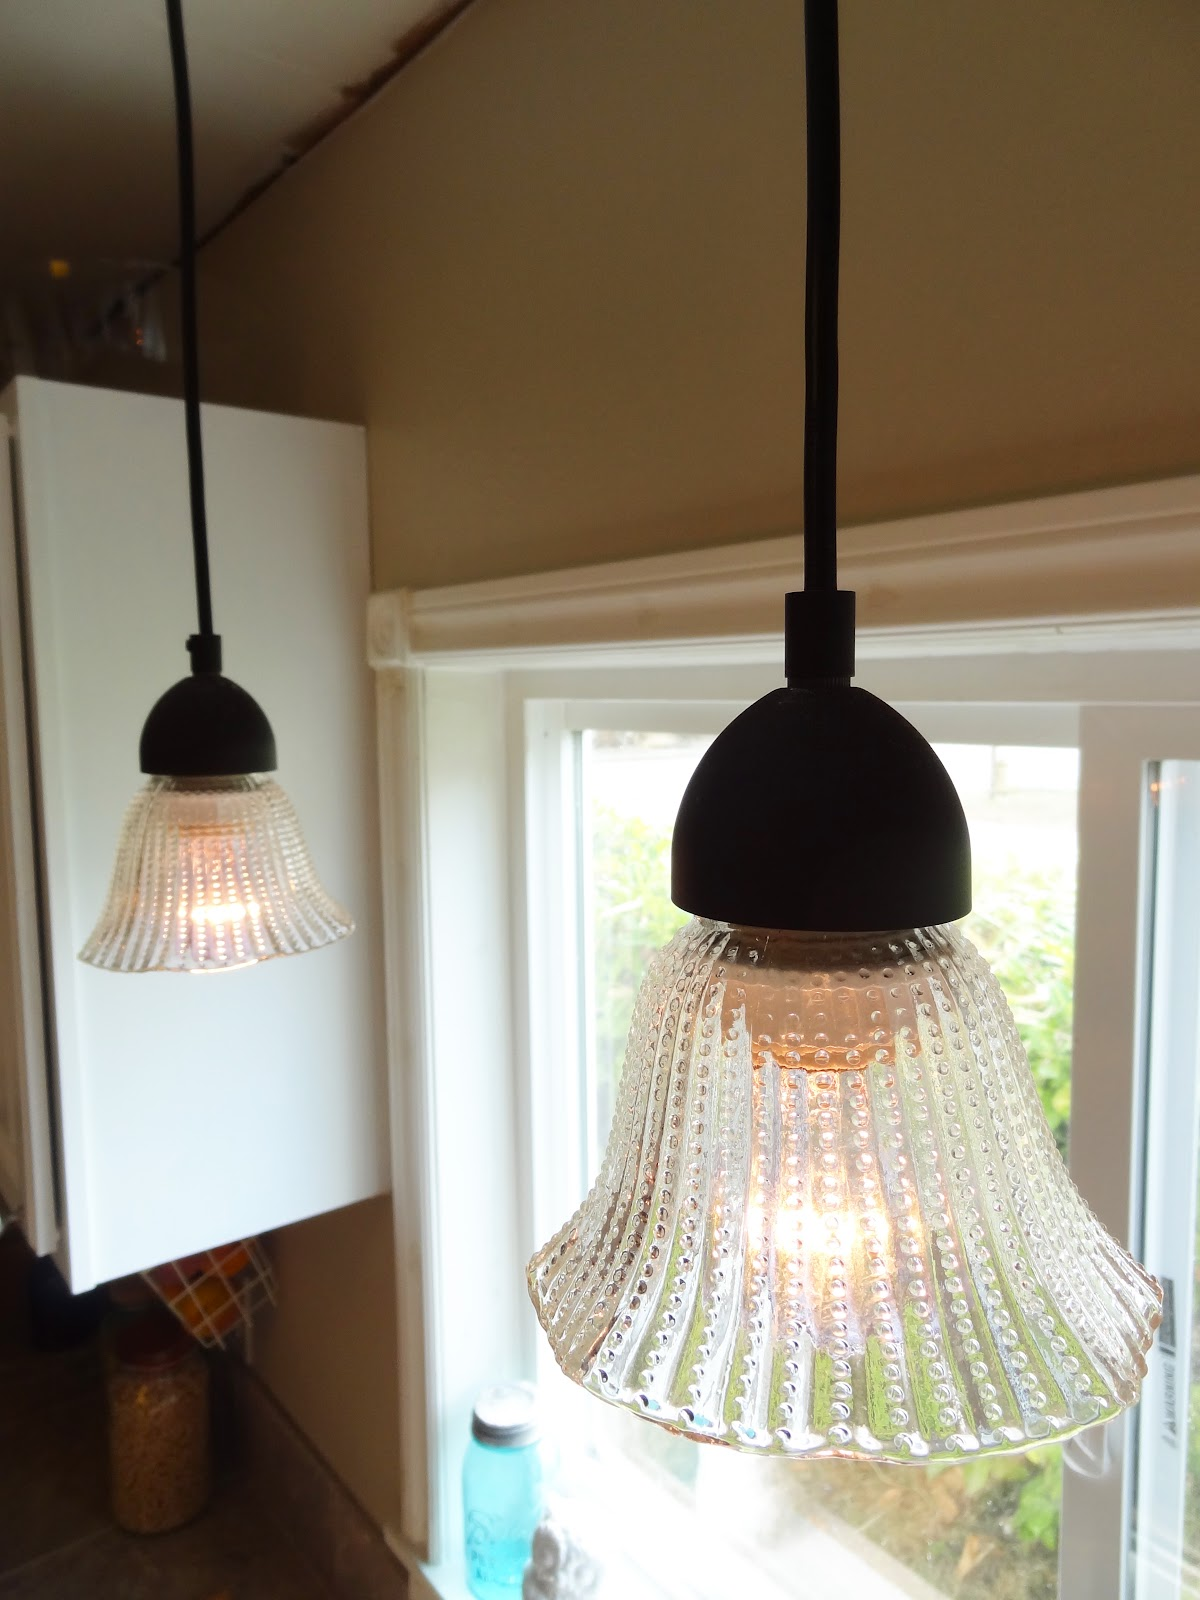 Cheap Glass Pendant Lights Diy Update Your Kitchen Lighting On The Cheap Revamp